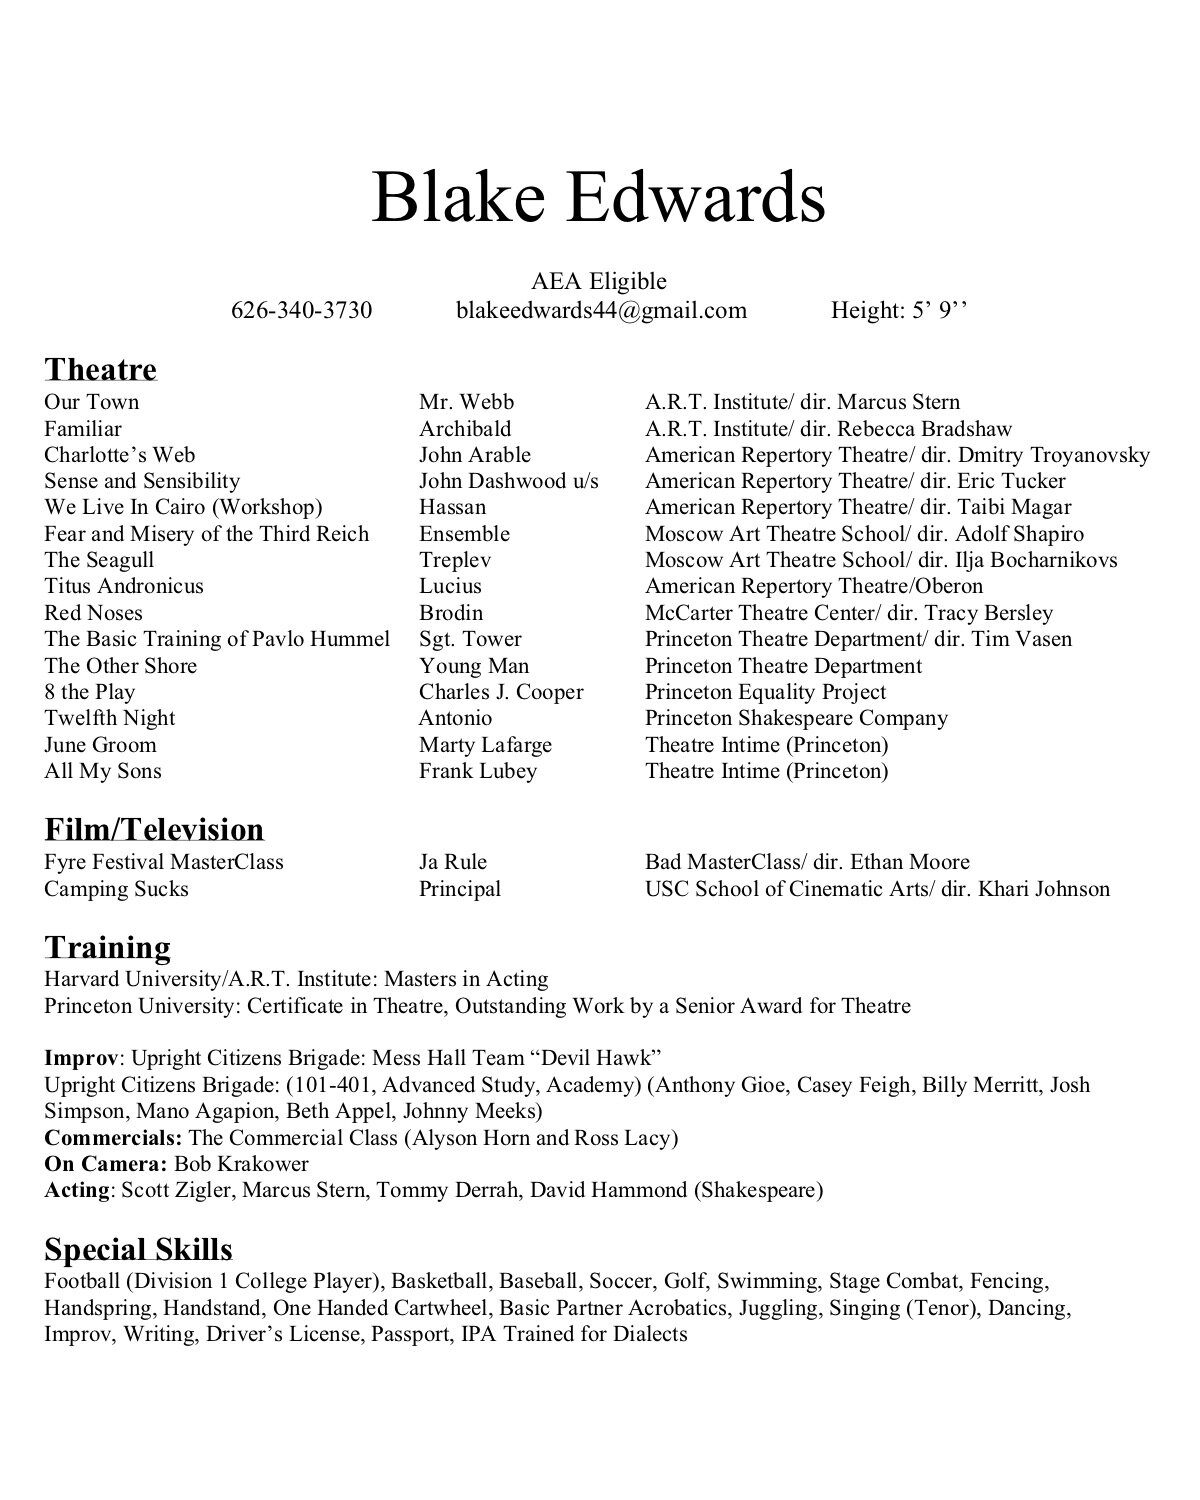 Blake Edwards Resume.jpg